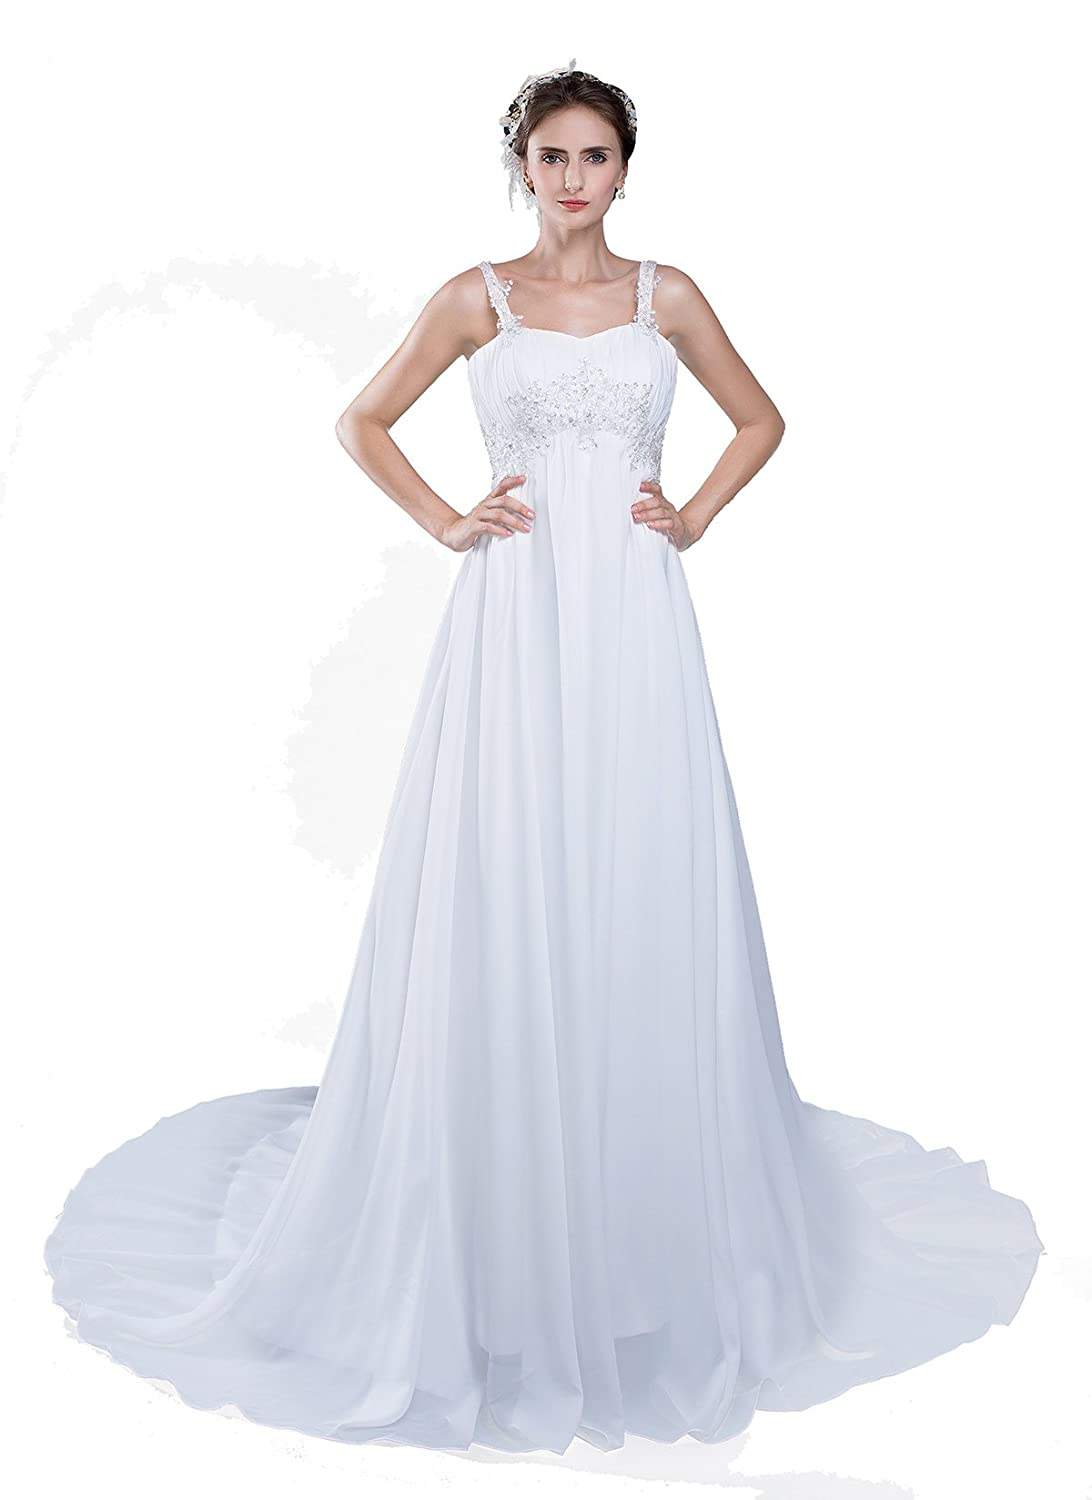 KekeHouse?Women Bridesmaid Wedding Dress Pleated Floral Long Chiffon Prom Dress with Straps Formal Evening Dress White Party Dress Lace Up